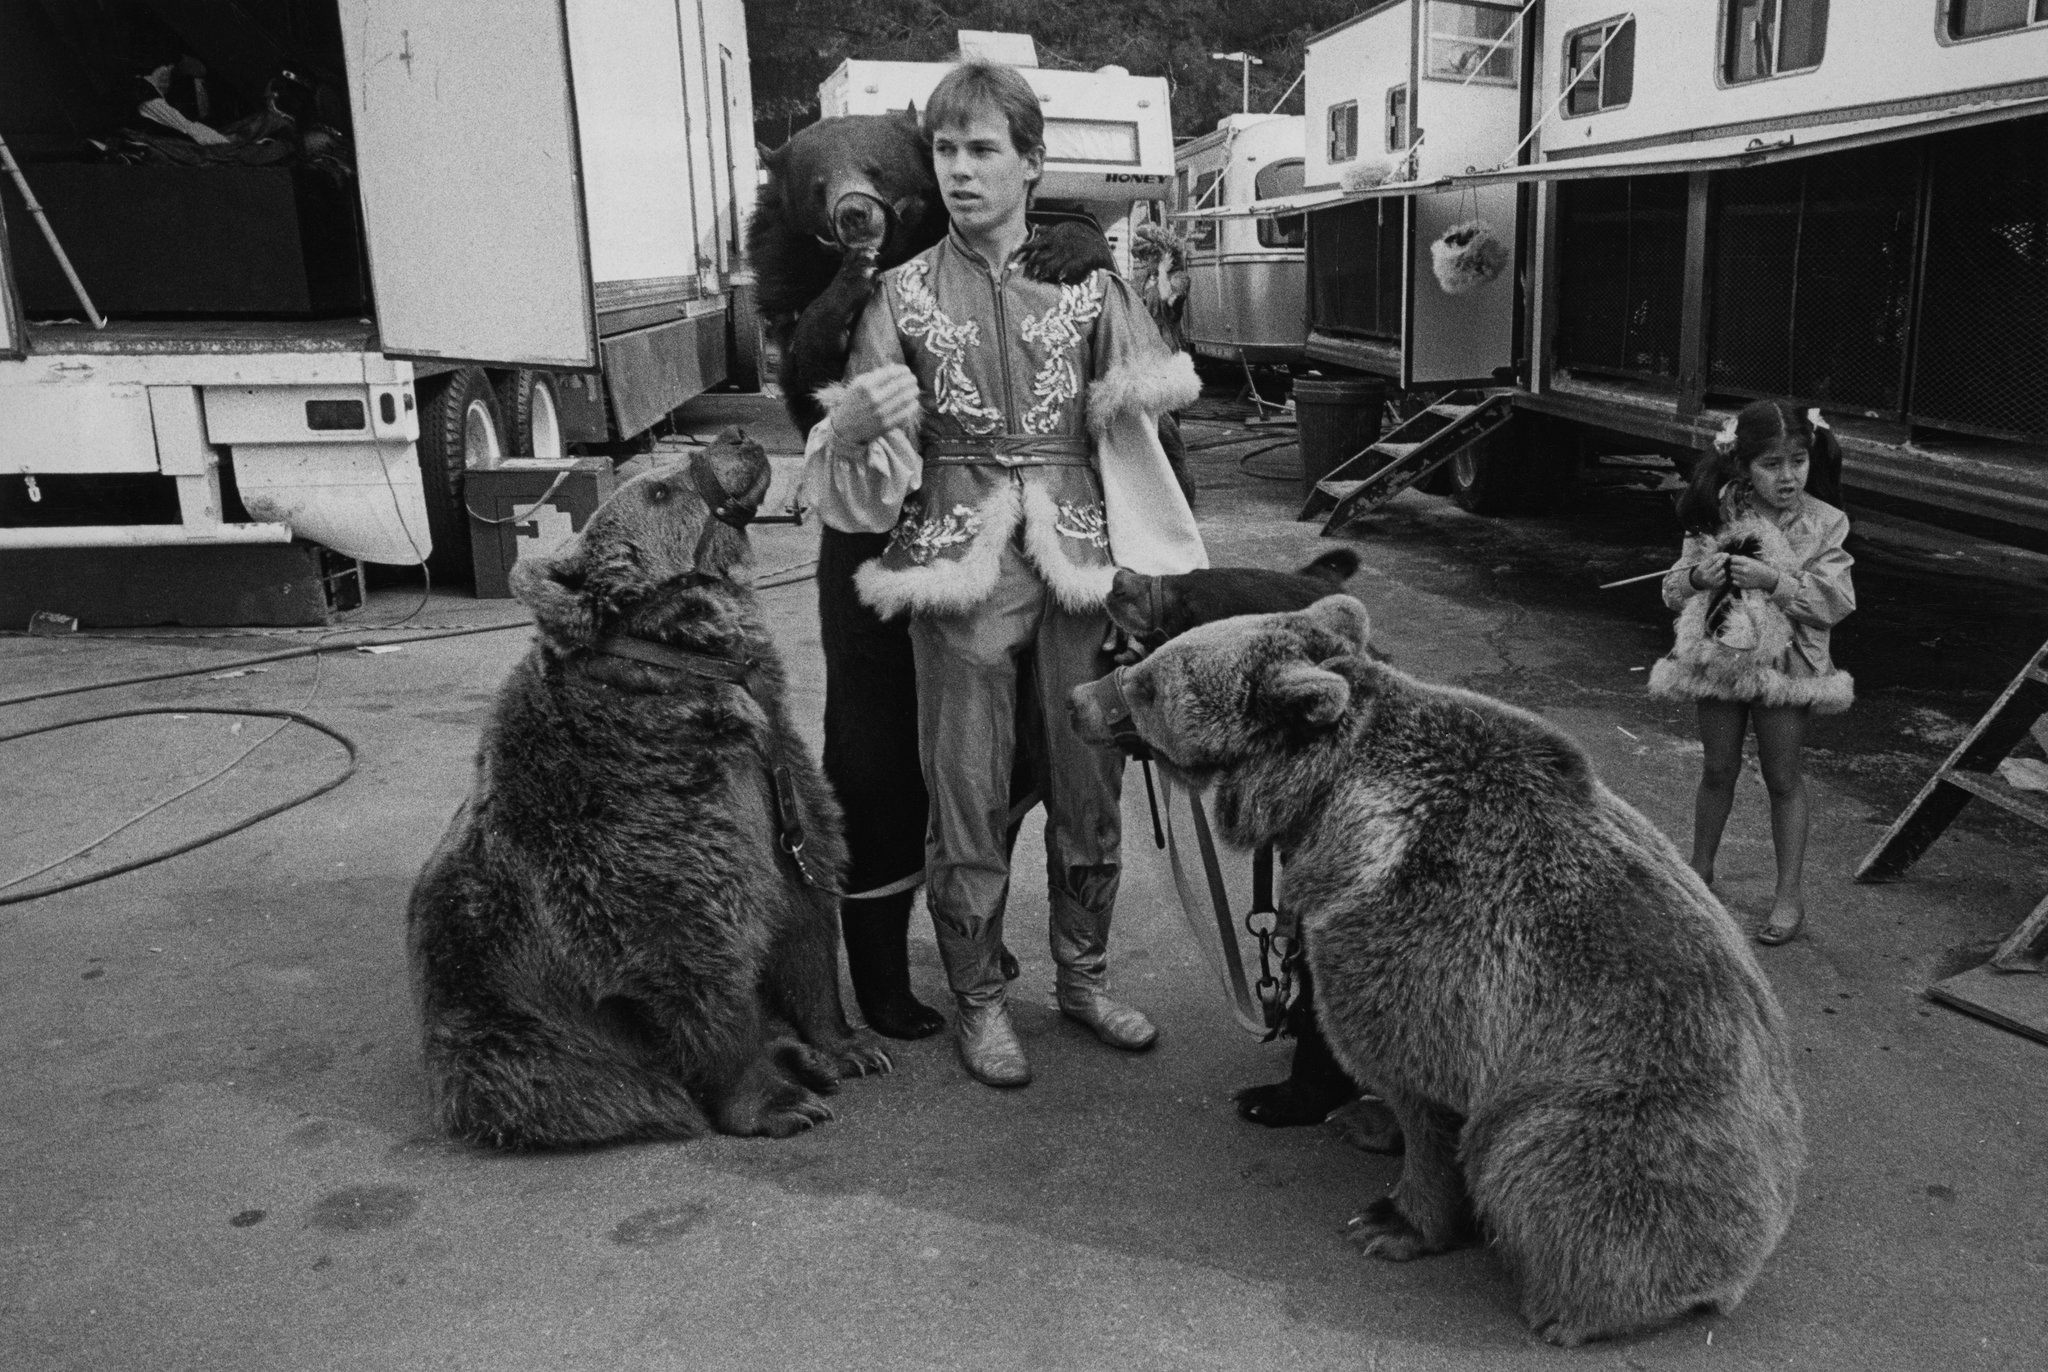 Bears at Circus Vargas in California in 1990 Jill Freedman